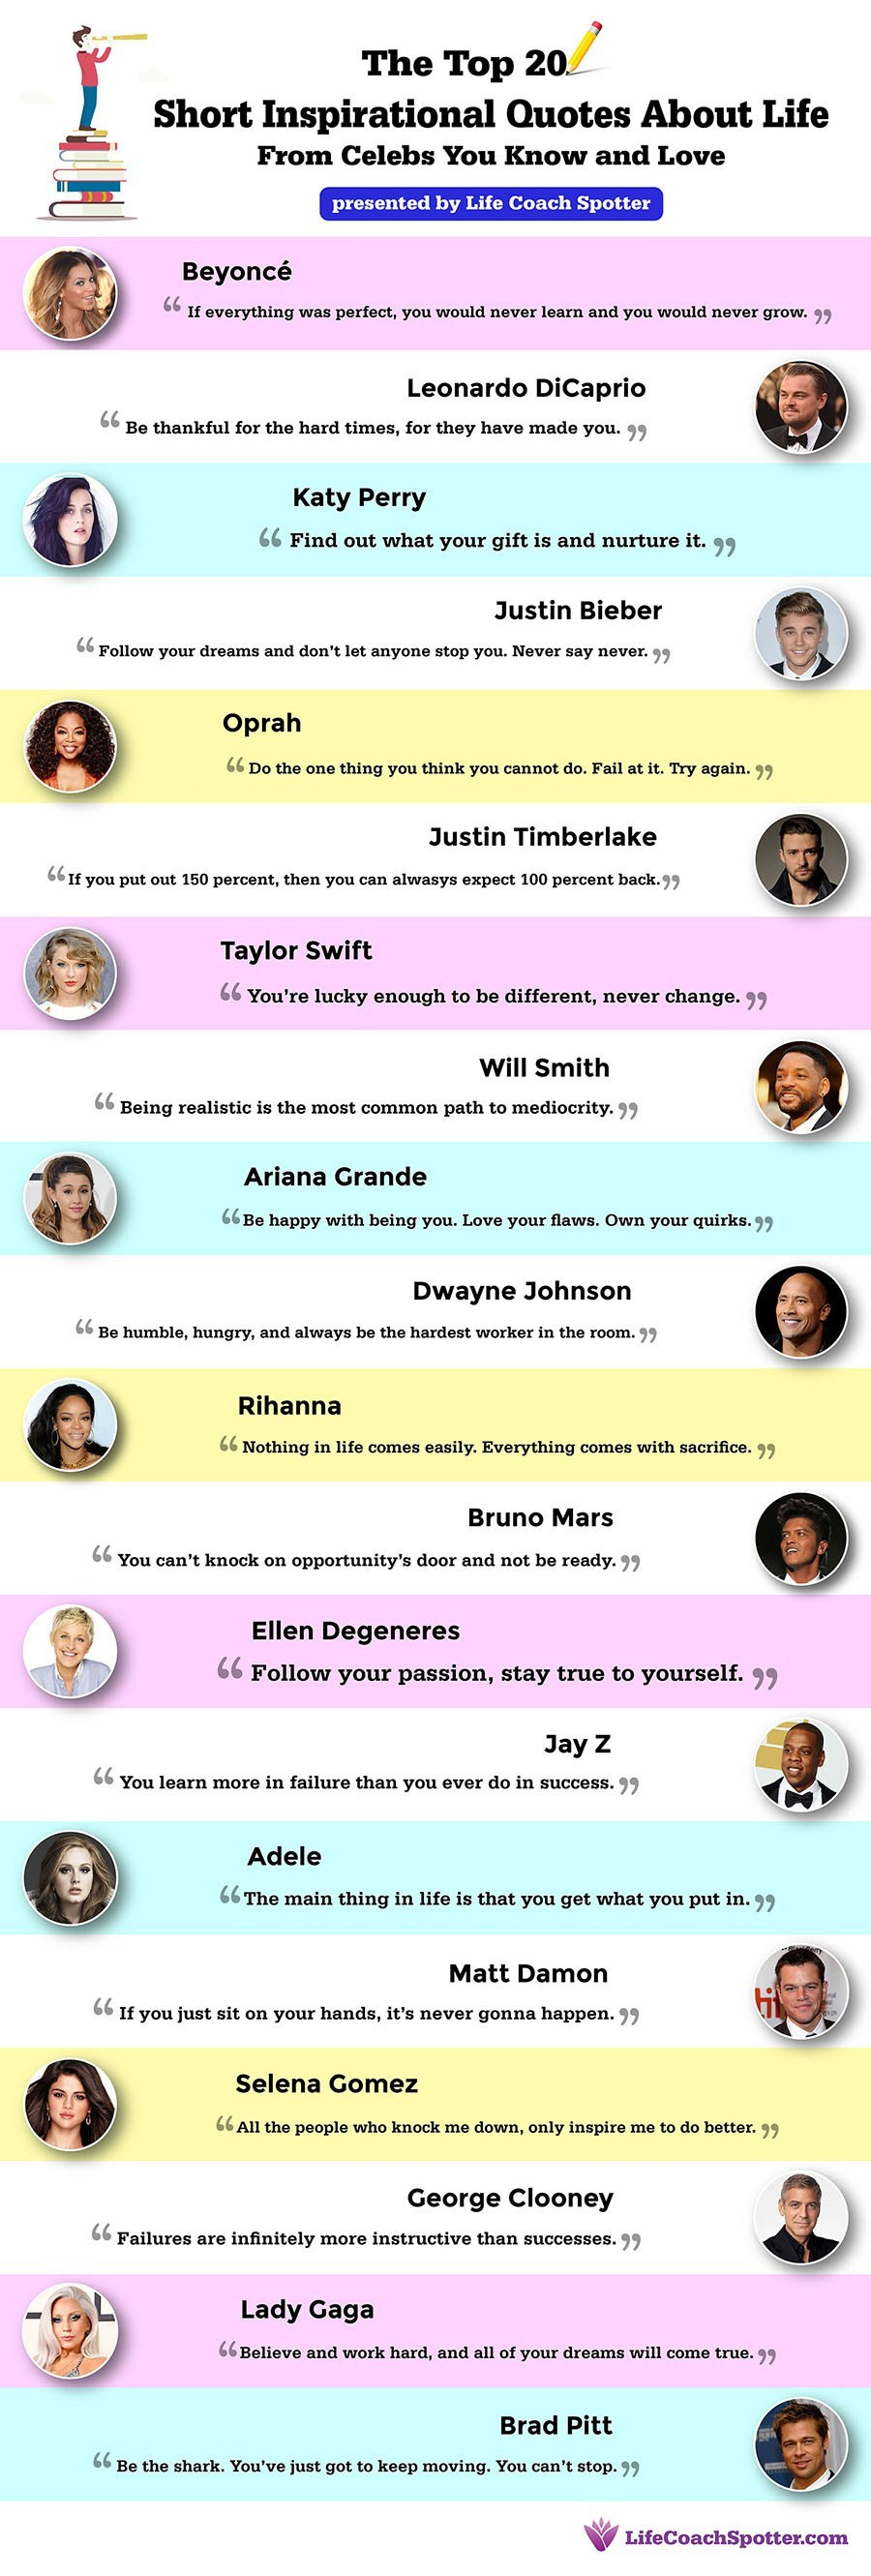 The Top 20 Inspirational Celebrity Quotes About Life Huffpost